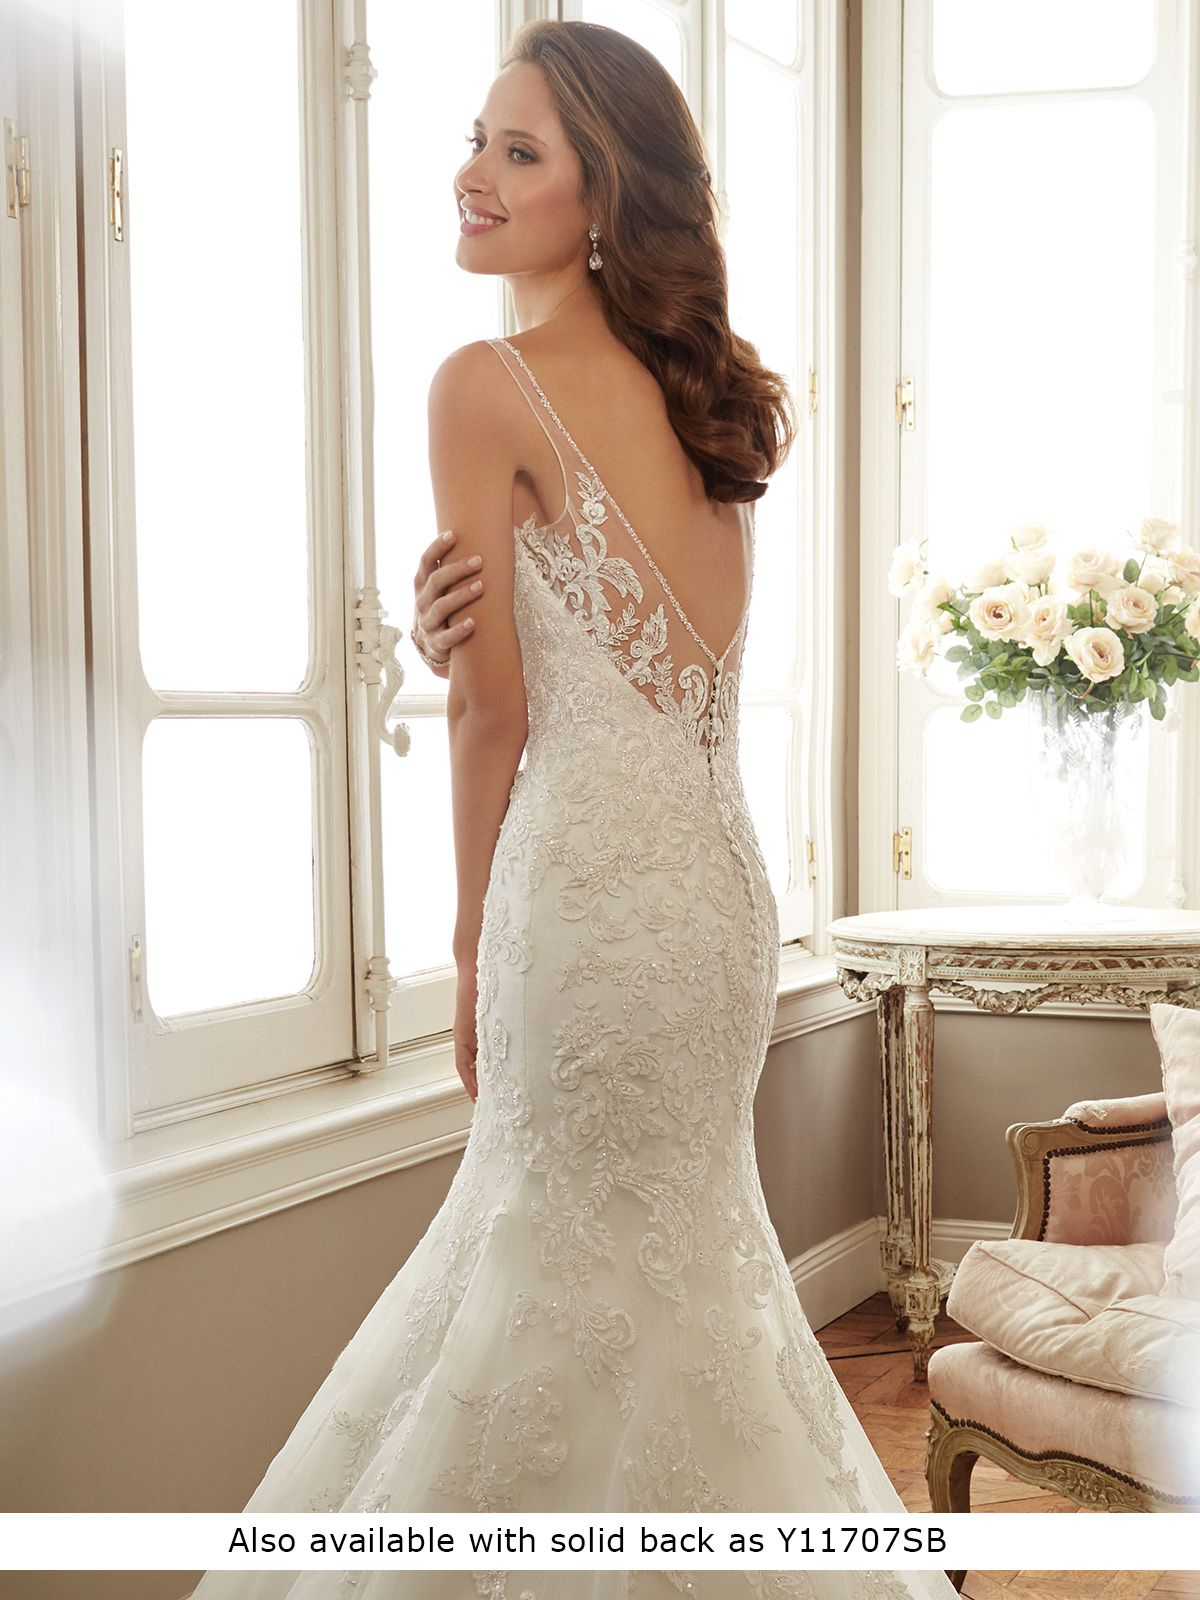 711694c1d7e0 Y11707 Margot - Sleeveless misty tulle fit and flare gown with slender  illusion shoulder straps and soft sweetheart illusion neckline edged with  crystal ...